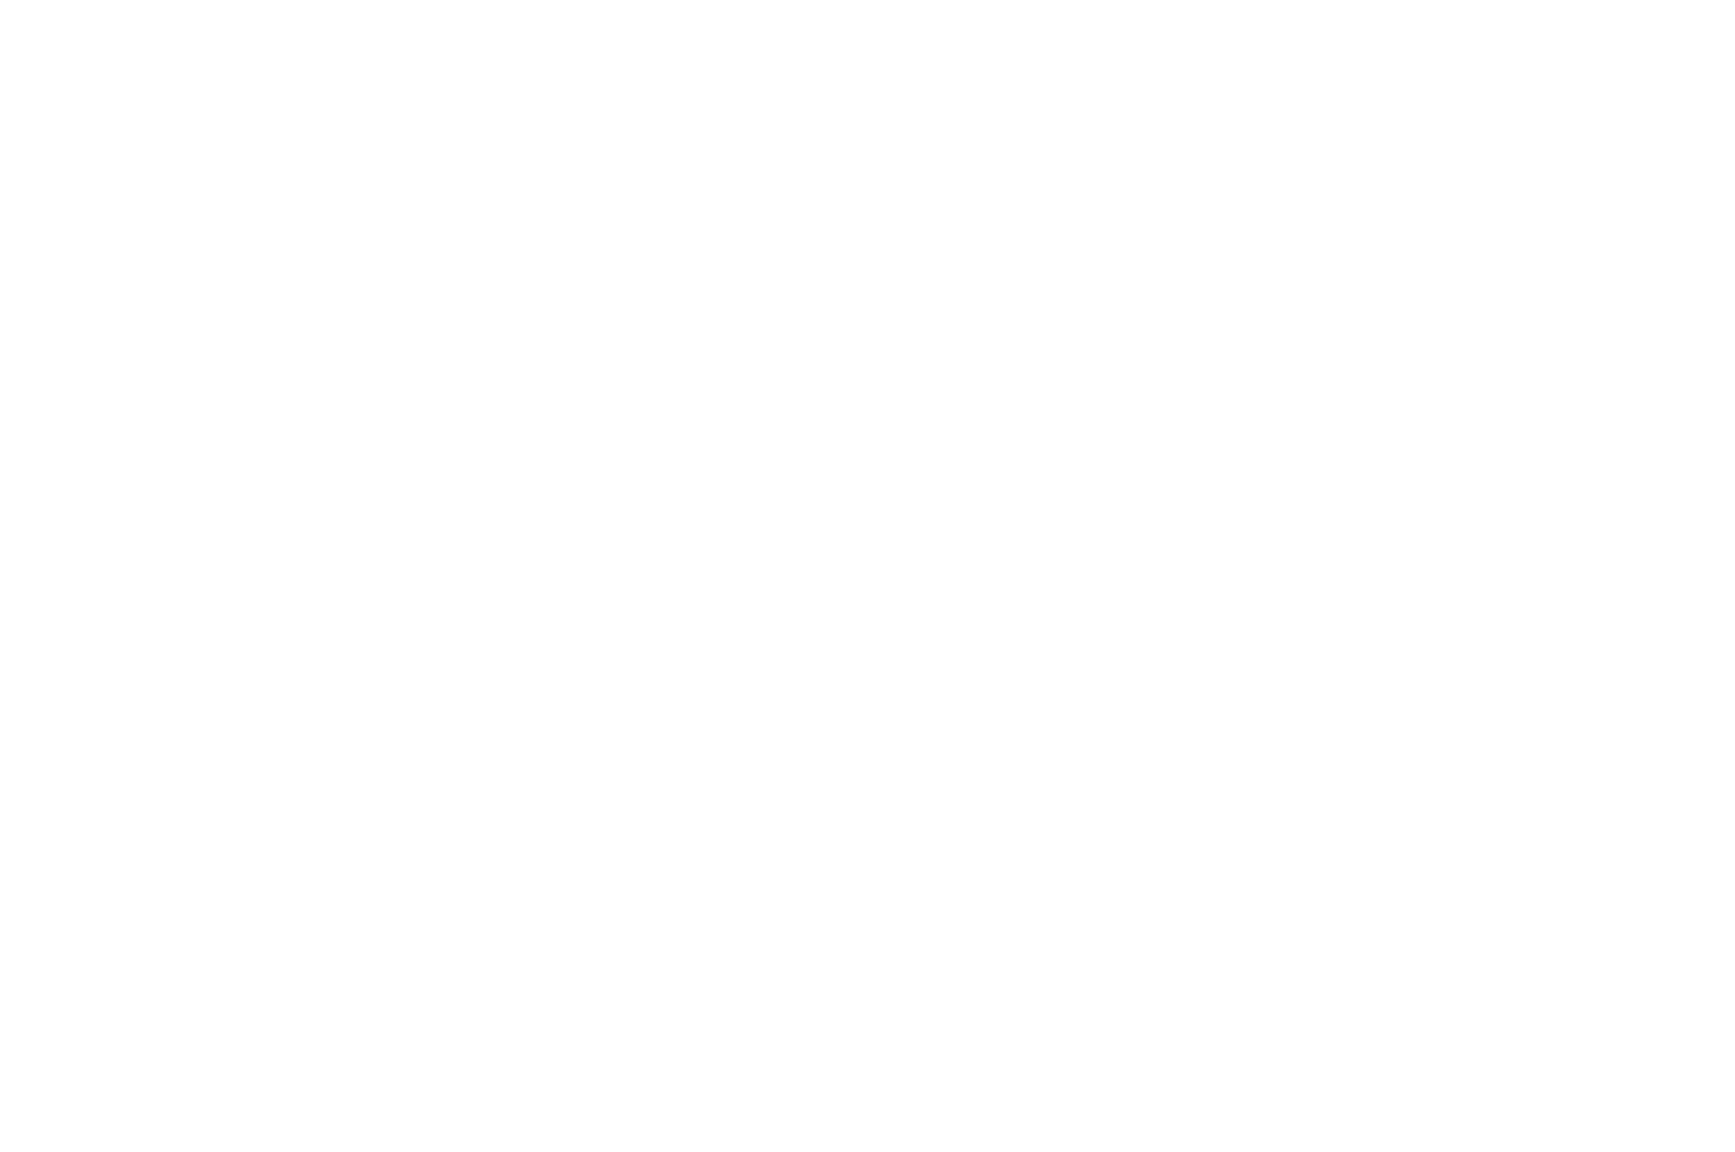 OFFICIAL SELECTION - UNAFF - 2017_white.png